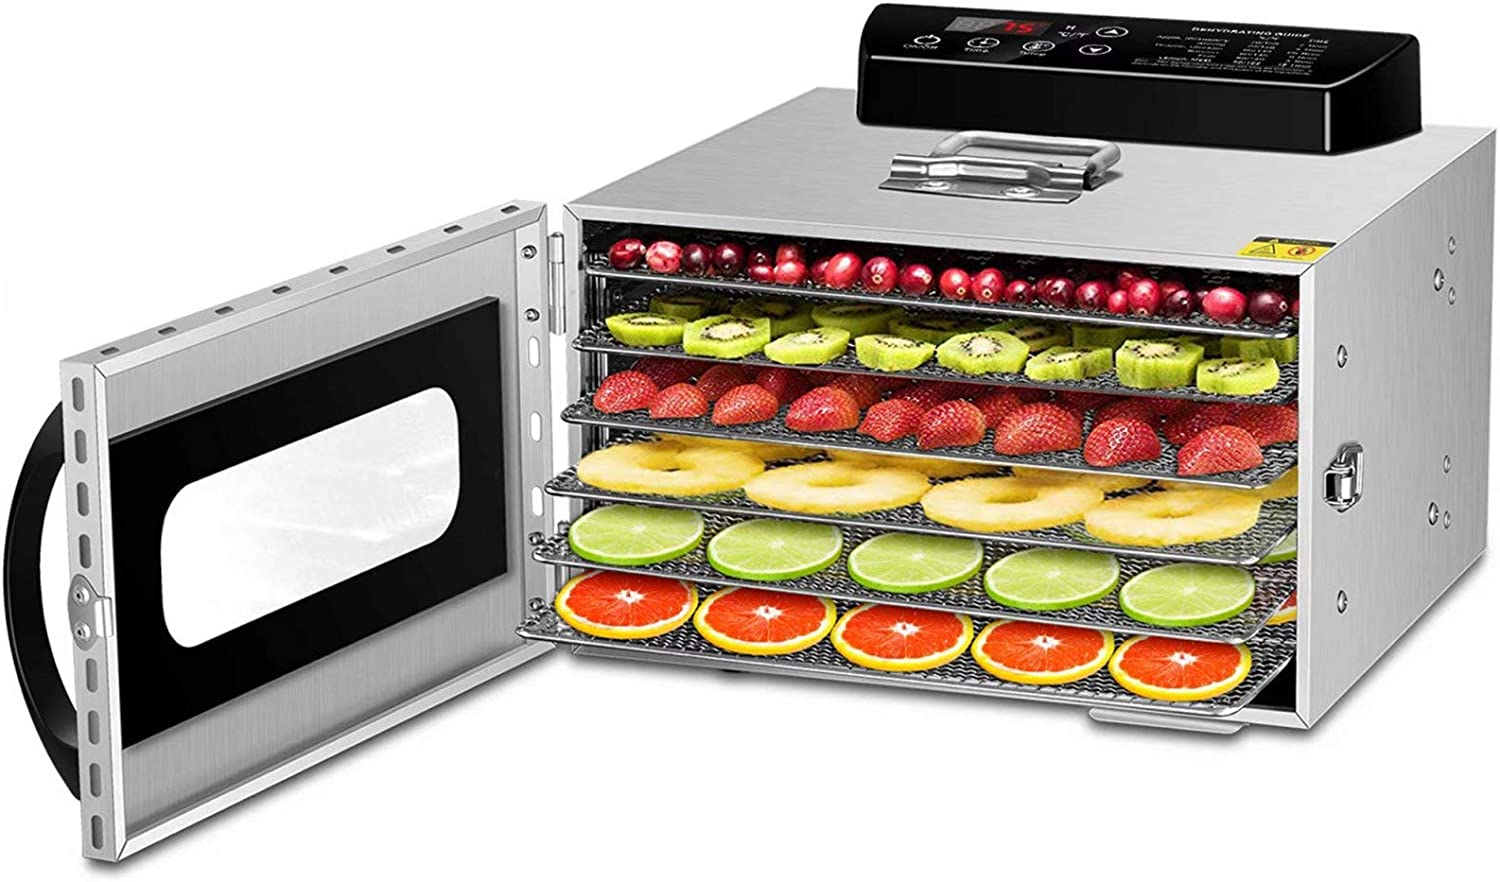 Food Dehydrator Machine with Thermostat Control, Electric Dehydrator for Jerky Food Dehydrator 400w With 6 Removable Trays, 30-90° Temperature Adjustable for Healthy & Natural Snacks